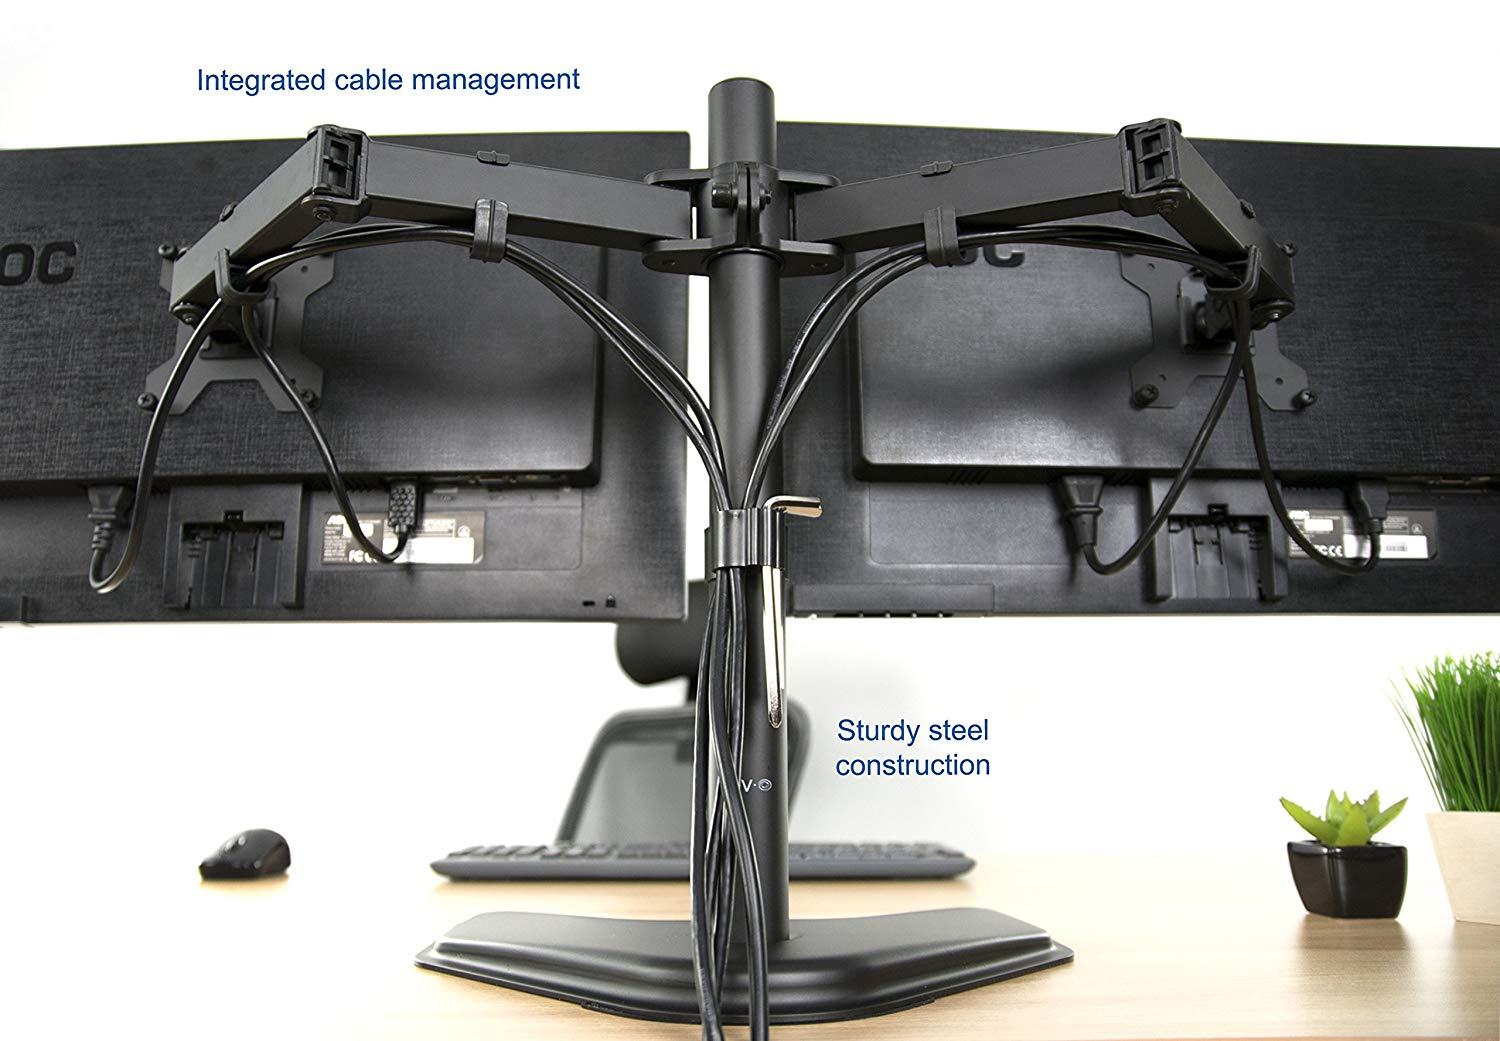 VIVO Dual Monitor Free Standing Desk Mount Stand